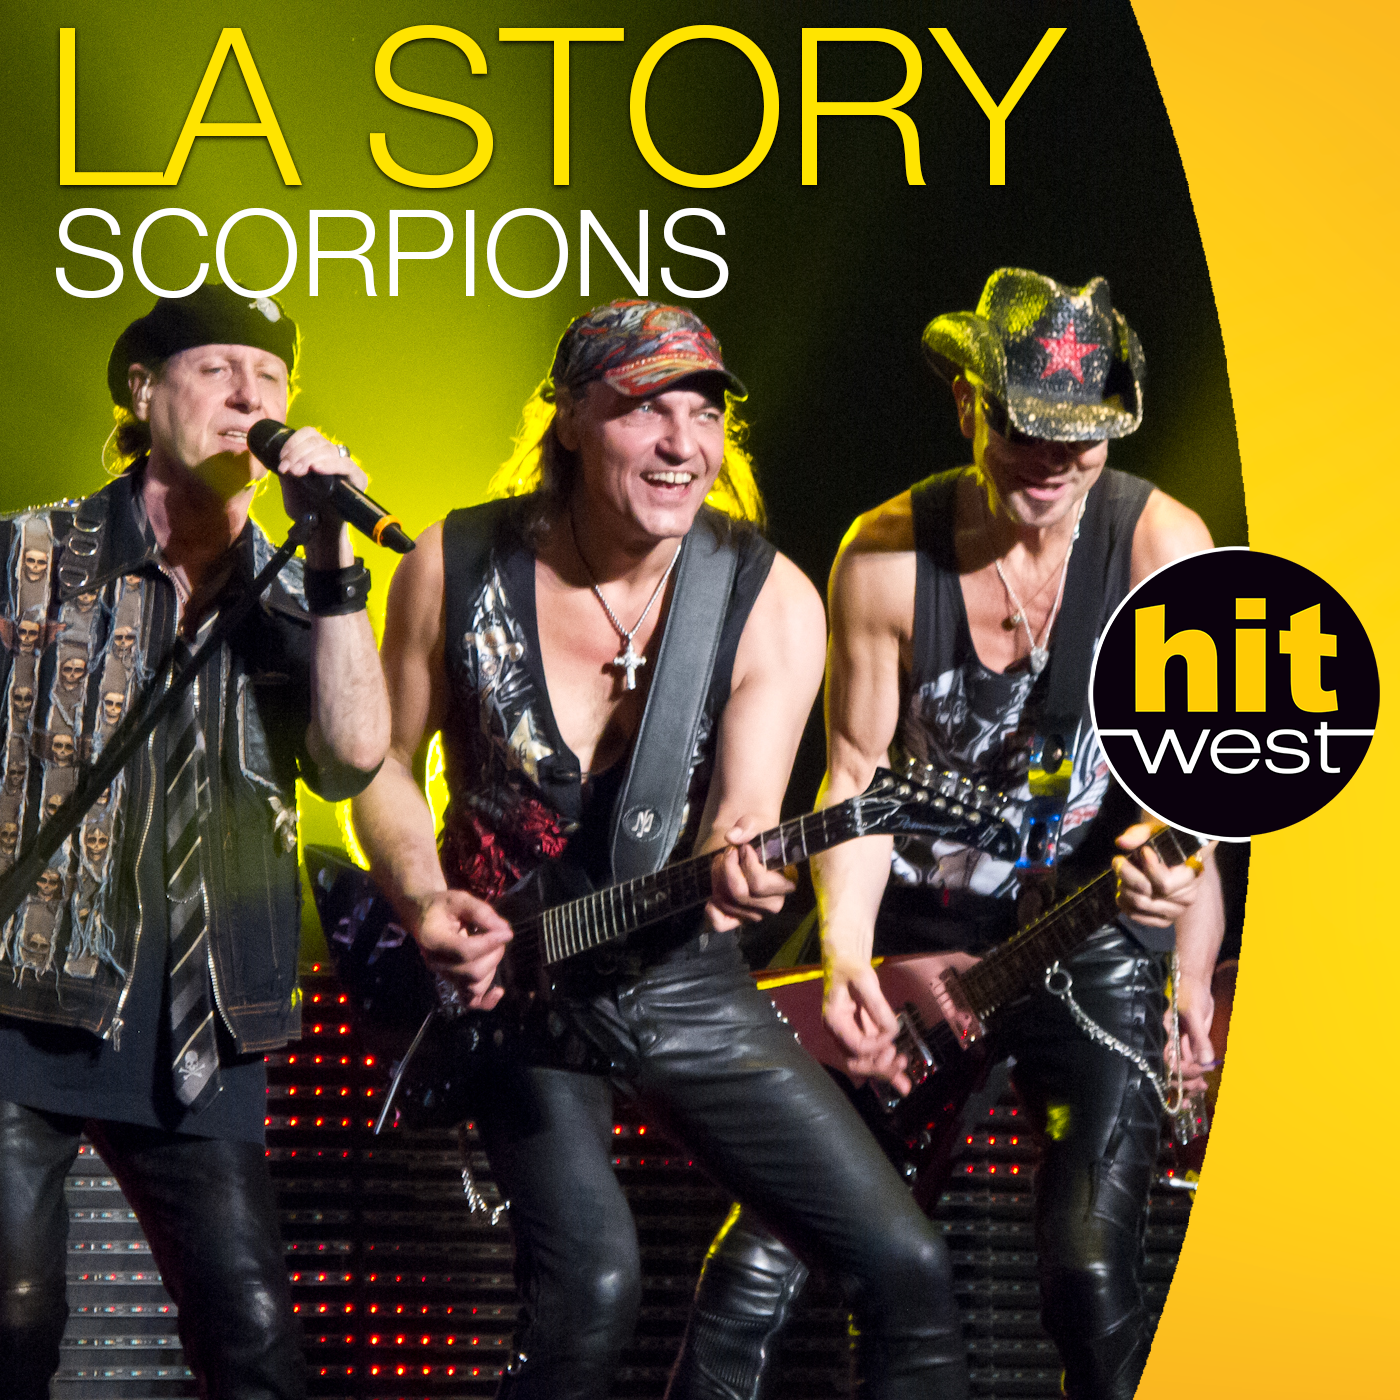 HW-story-scorpions.png (2.71 MB)